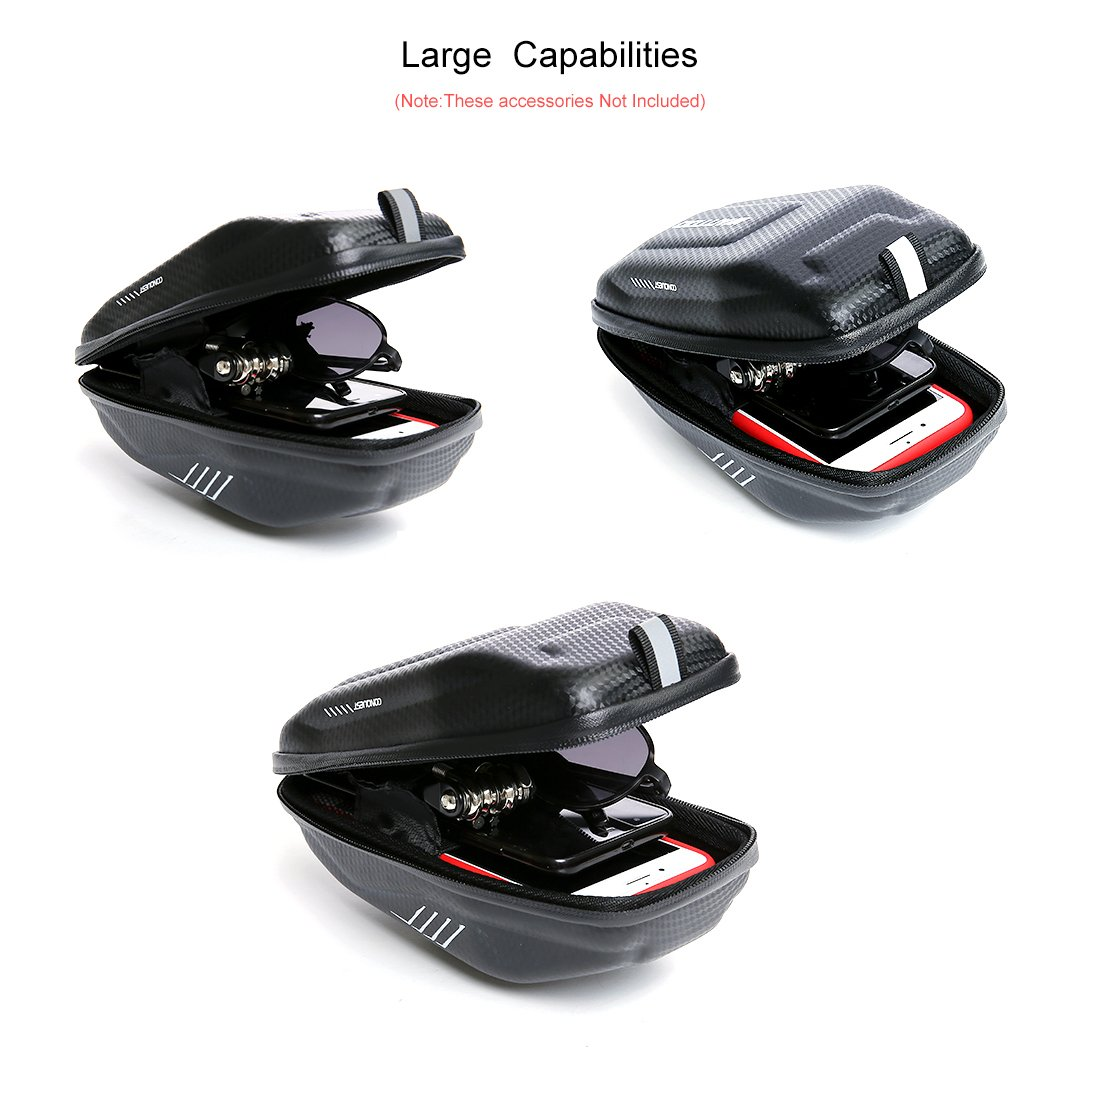 Wantdo Bicycle Saddle Bag with Highly Sealed Zipper for Repair Tools,Waterproof Bike Bag with Reflective Logo Outdoor Accessories Pocket Cycling Pack